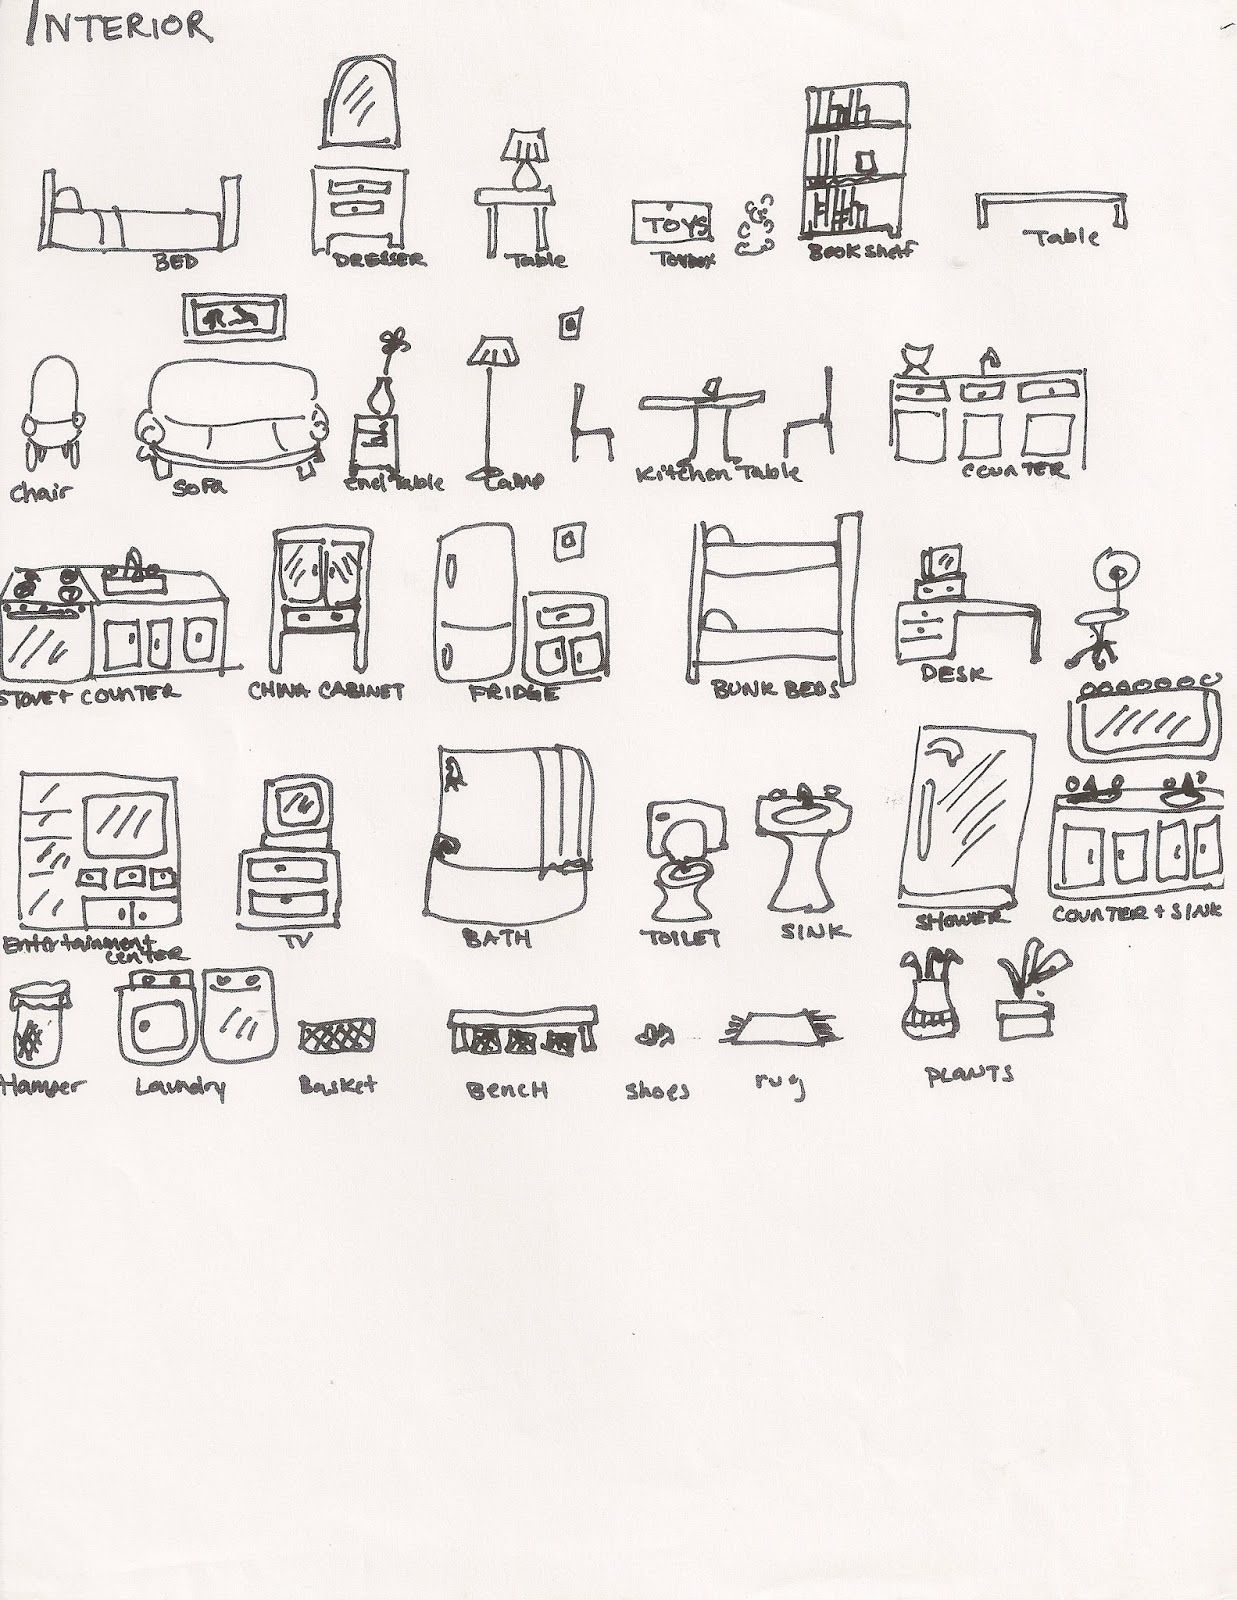 Interior Of A House Brainstorming Handout